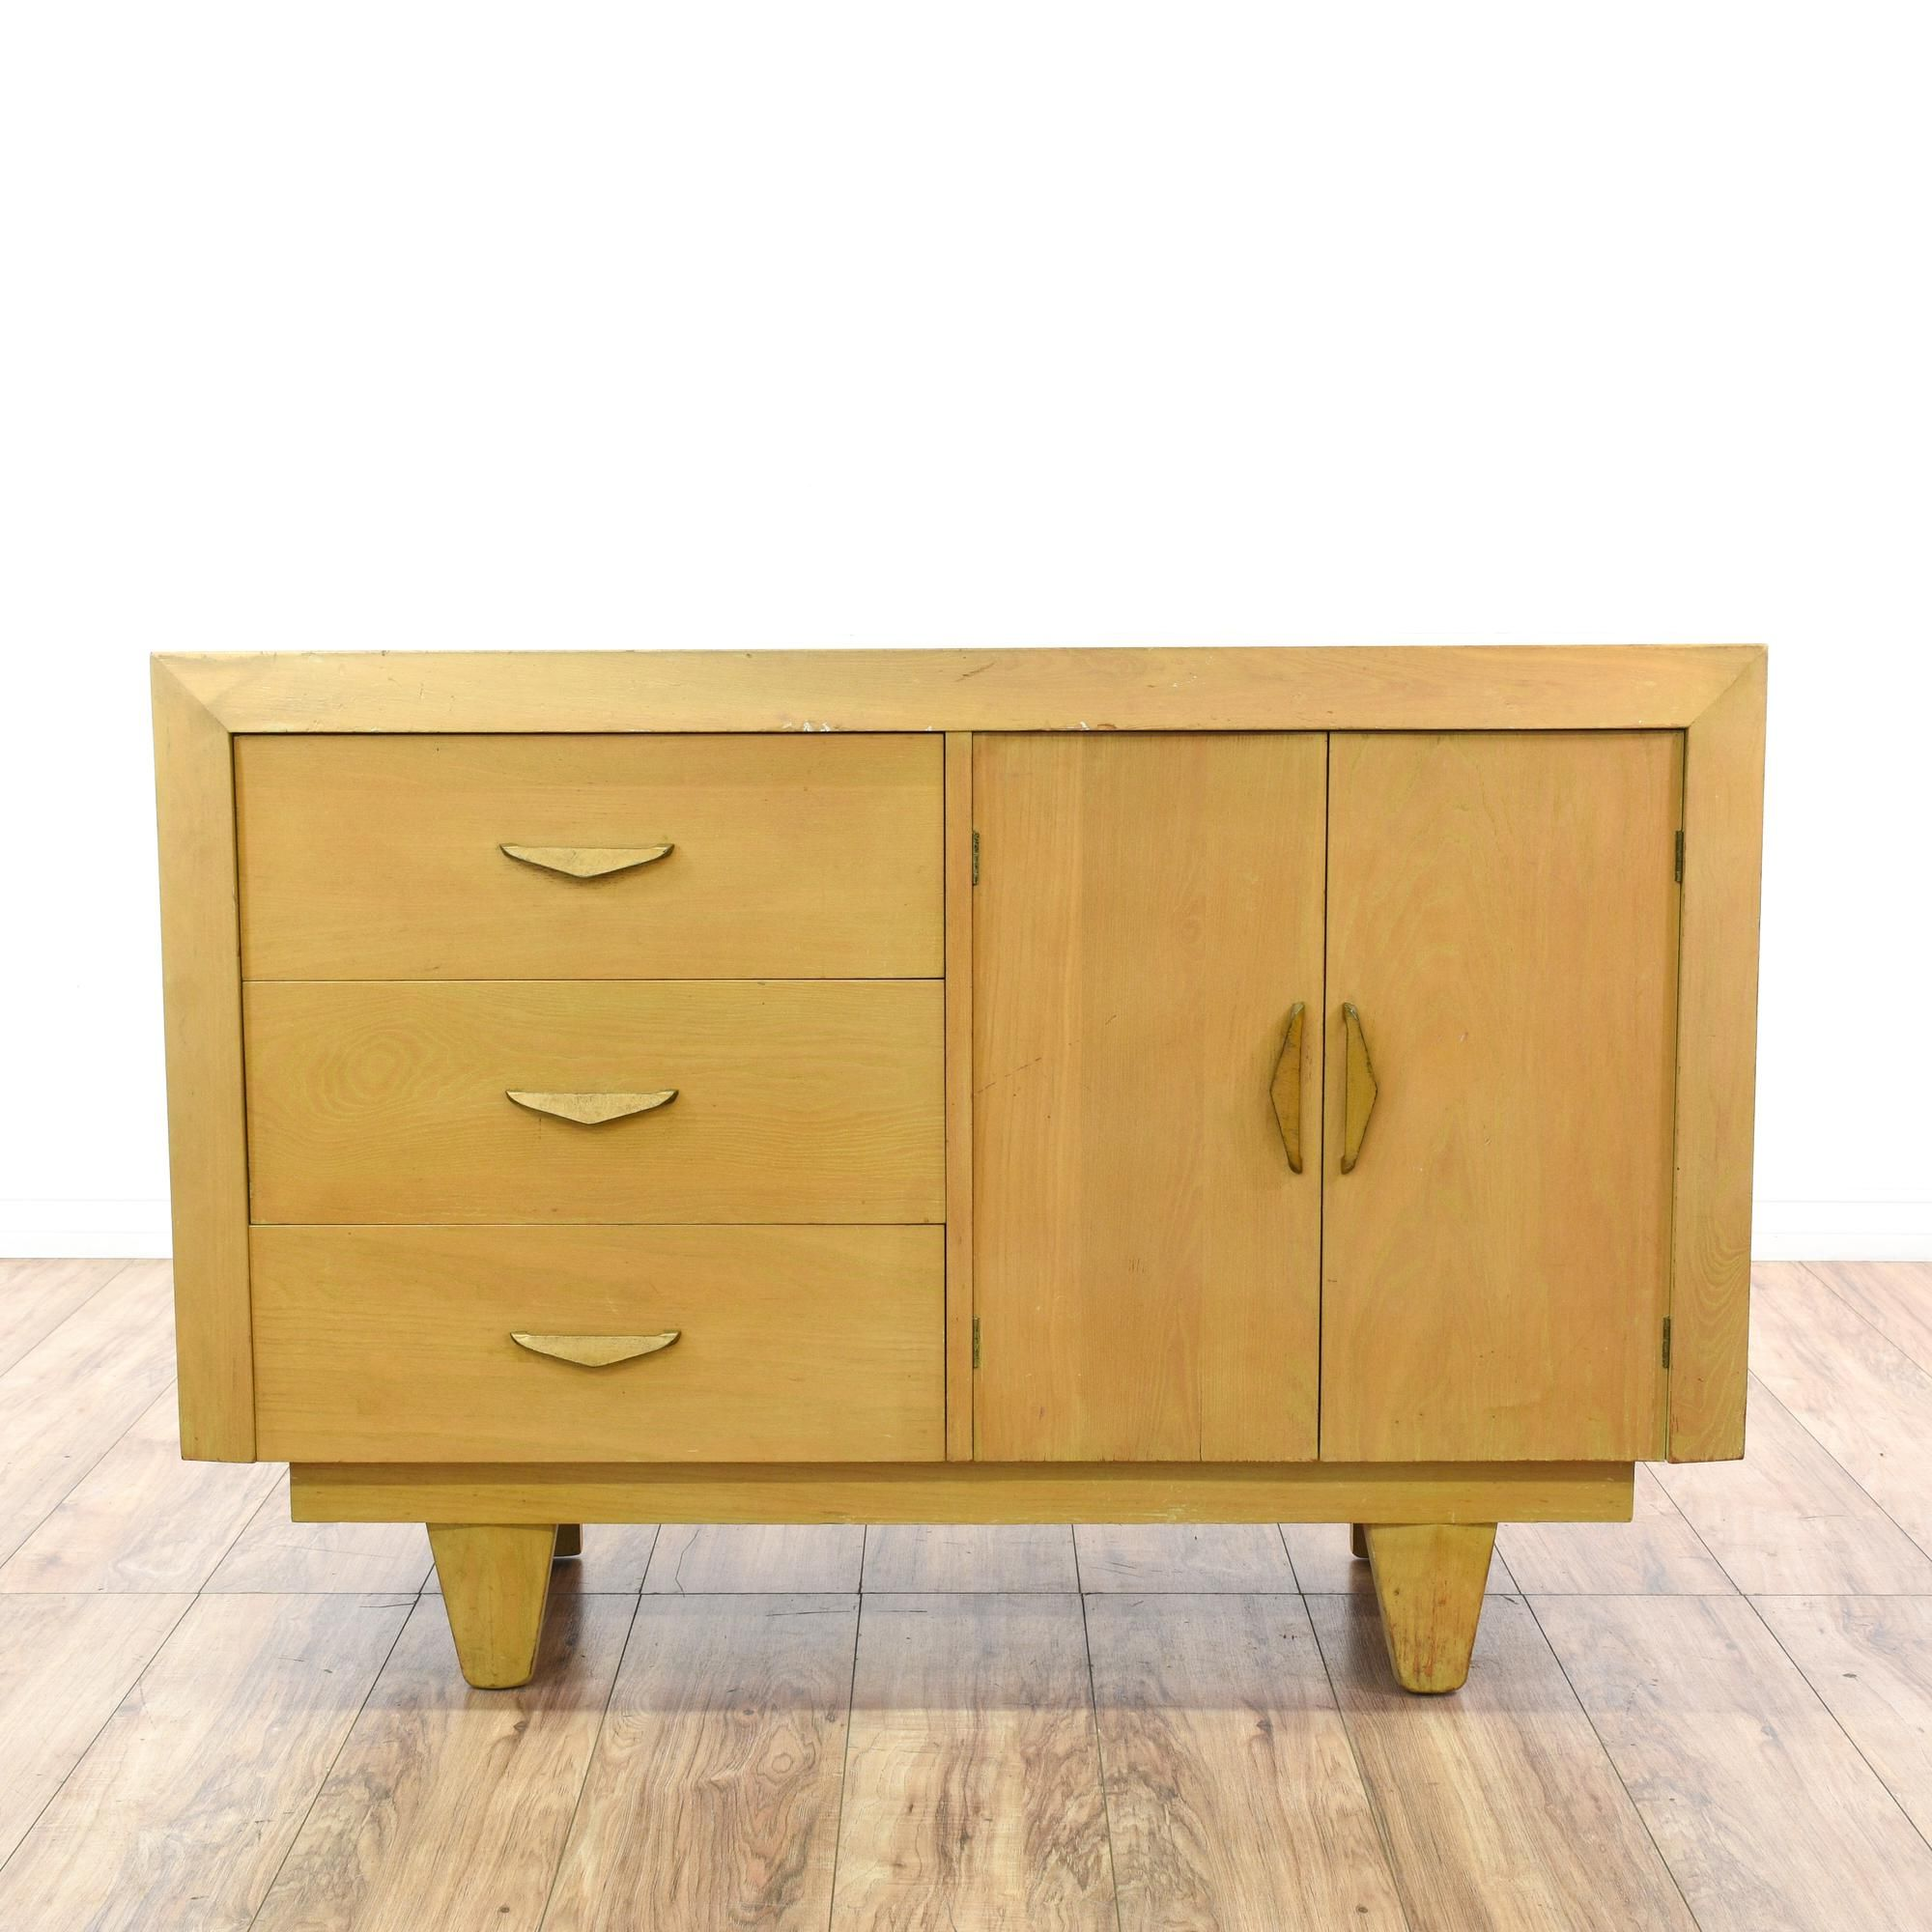 This mid century modern sideboard buffet is featured in a solid wood